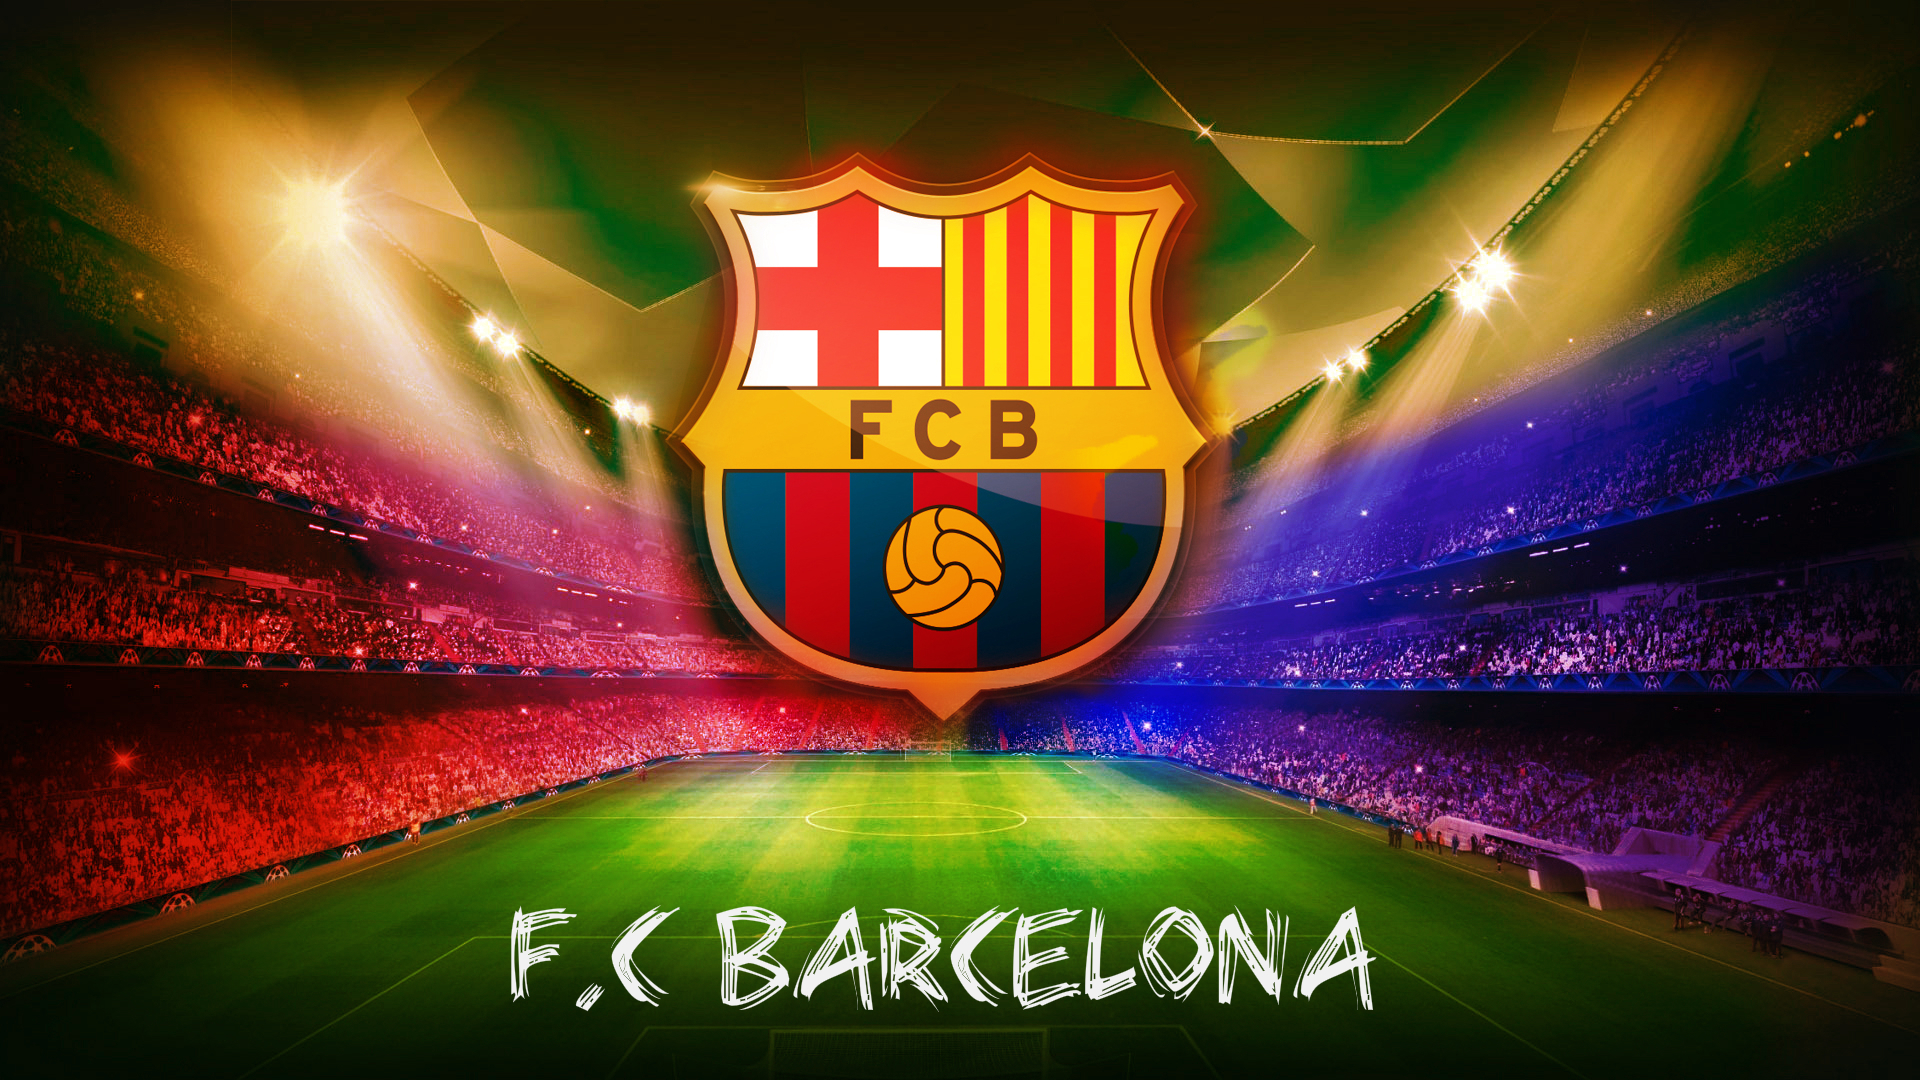 Barcelona fc to set up academy in zambia q fm fc barca voltagebd Choice Image